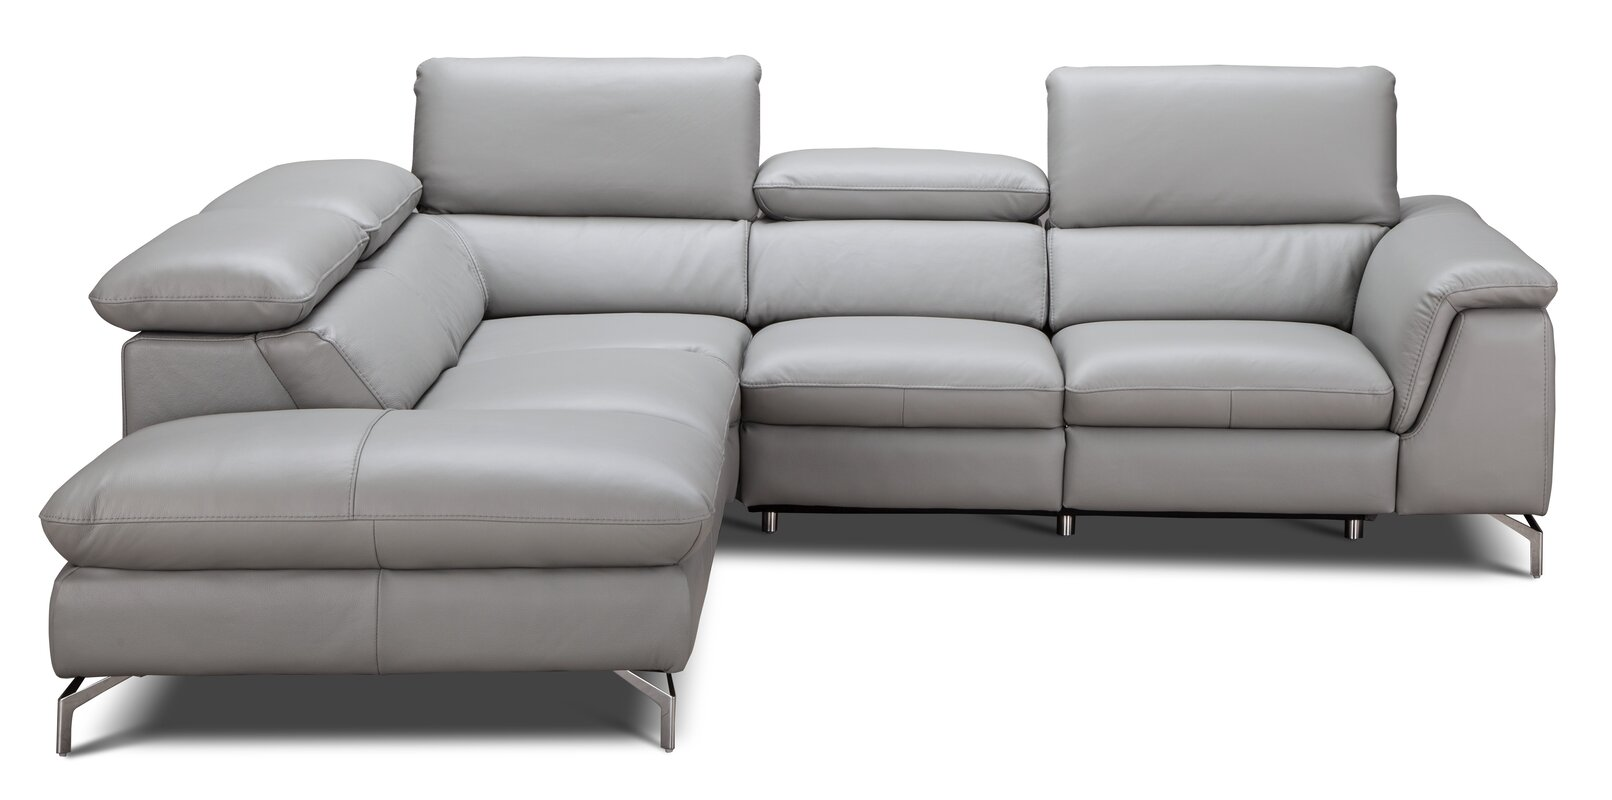 white recliner sectional nice with reclining grain sofas barclay top leather best living marvelous brilliant power sofa set rec brown shocking pc match